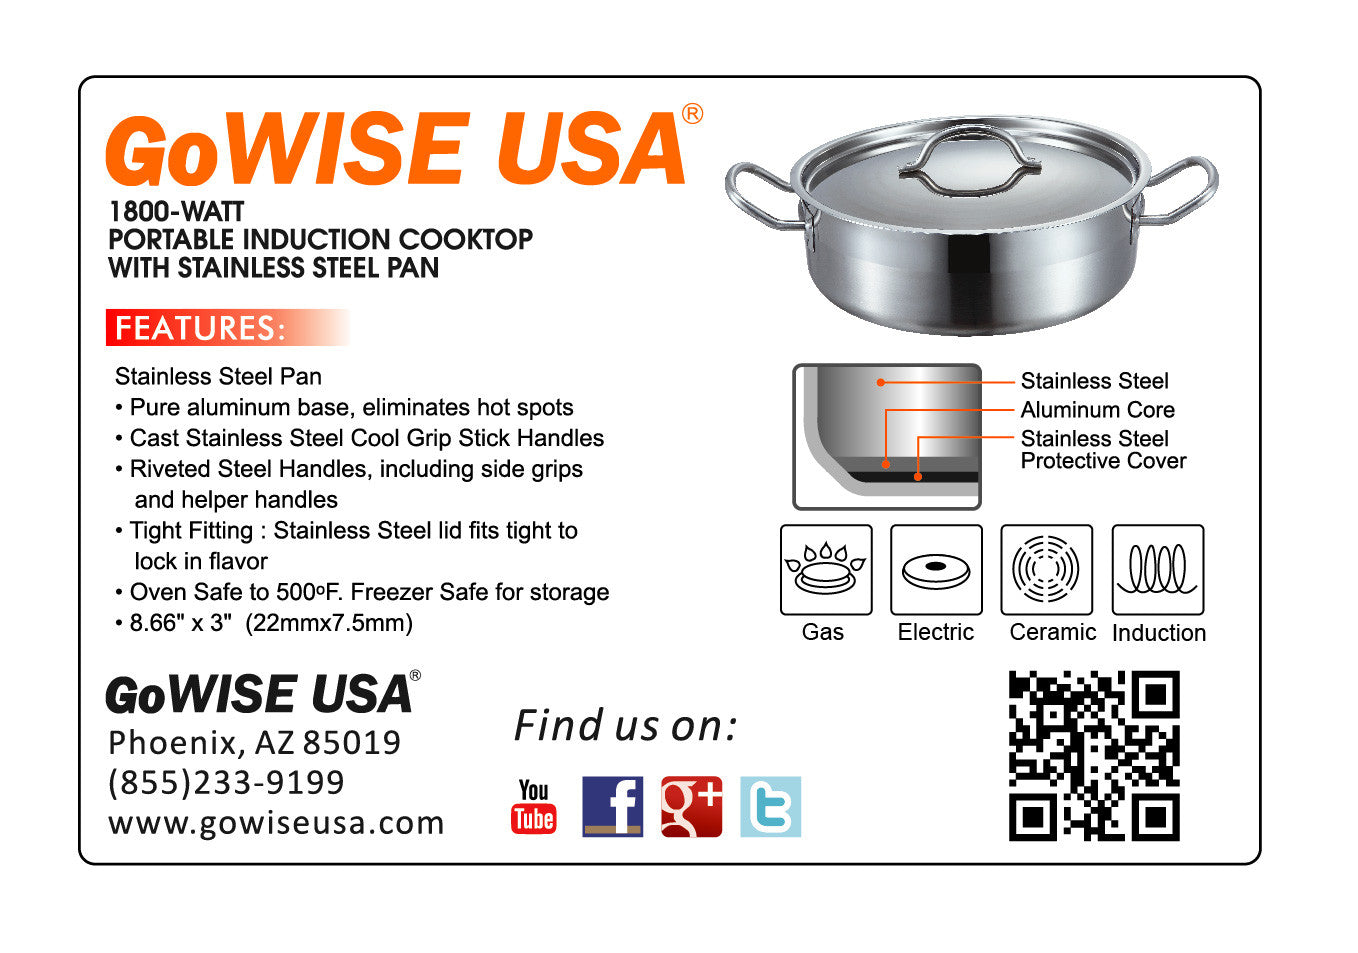 Portable induction cooktop with stainless steel pan for Gowise usa